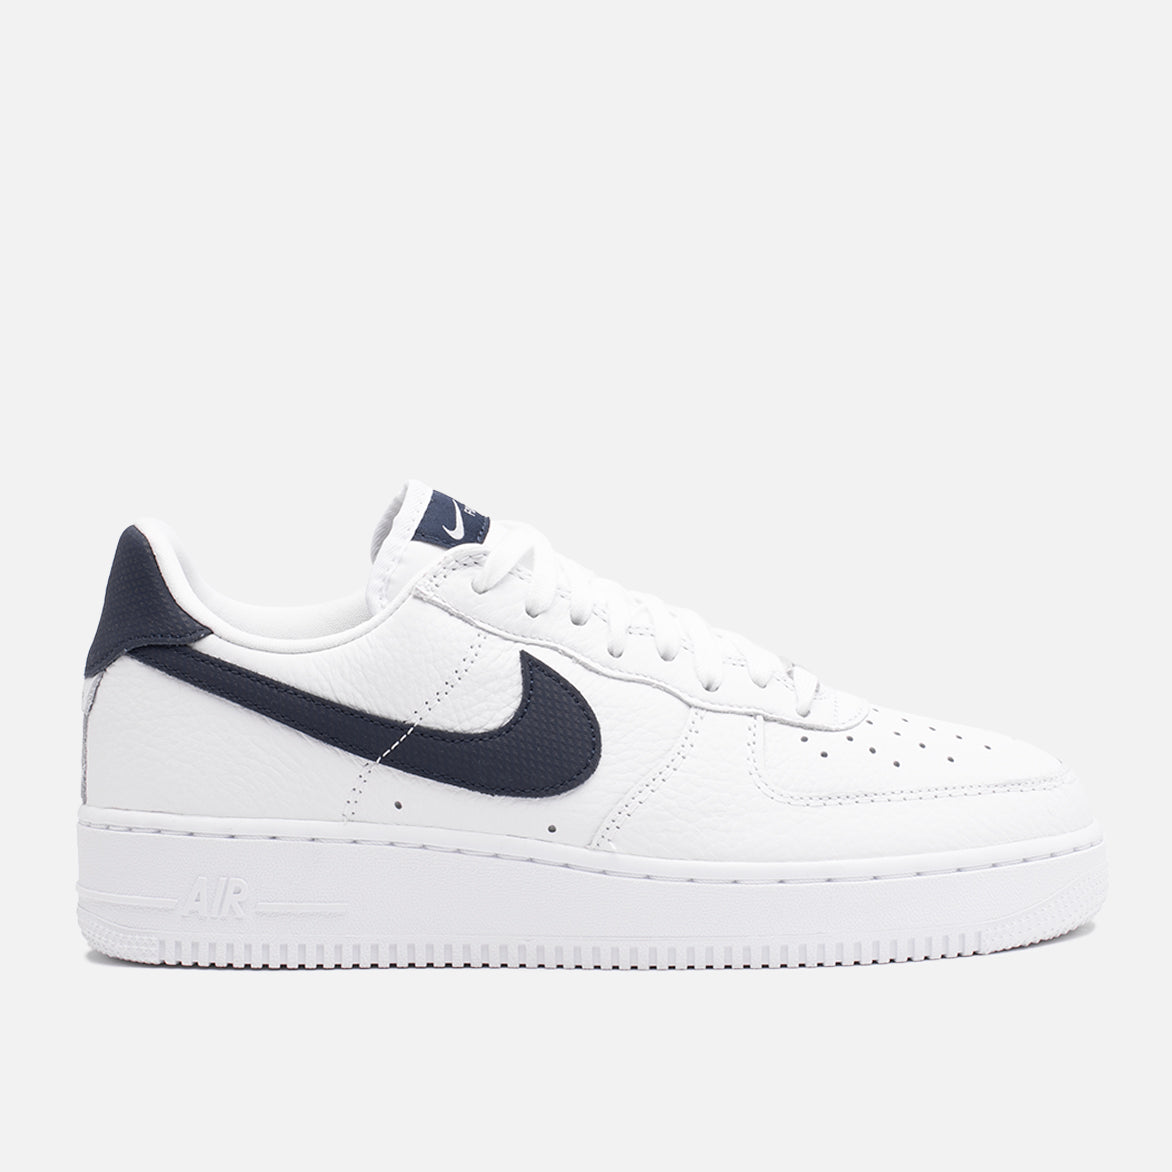 AIR FORCE 1 '07 CRAFT - WHITE / OBSIDIAN